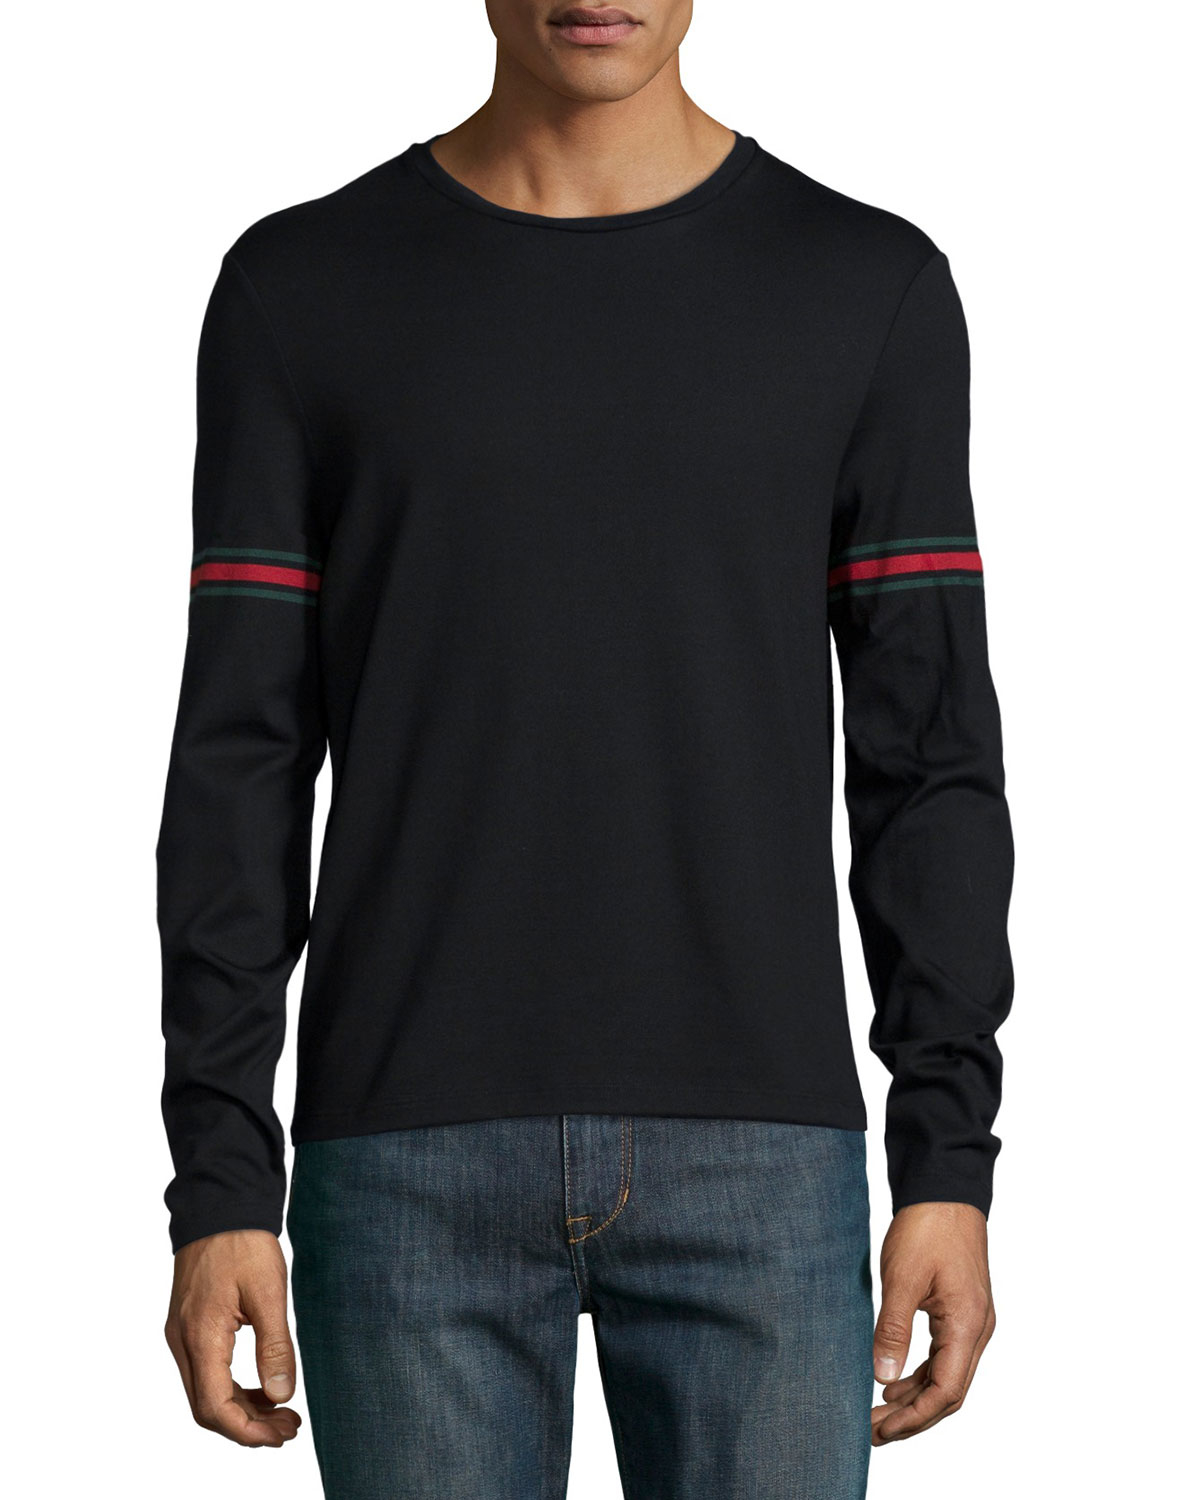 b040d92a9 Gucci Black Long-sleeve T-shirt W/ Green/red/green Arm Band in Gray ...